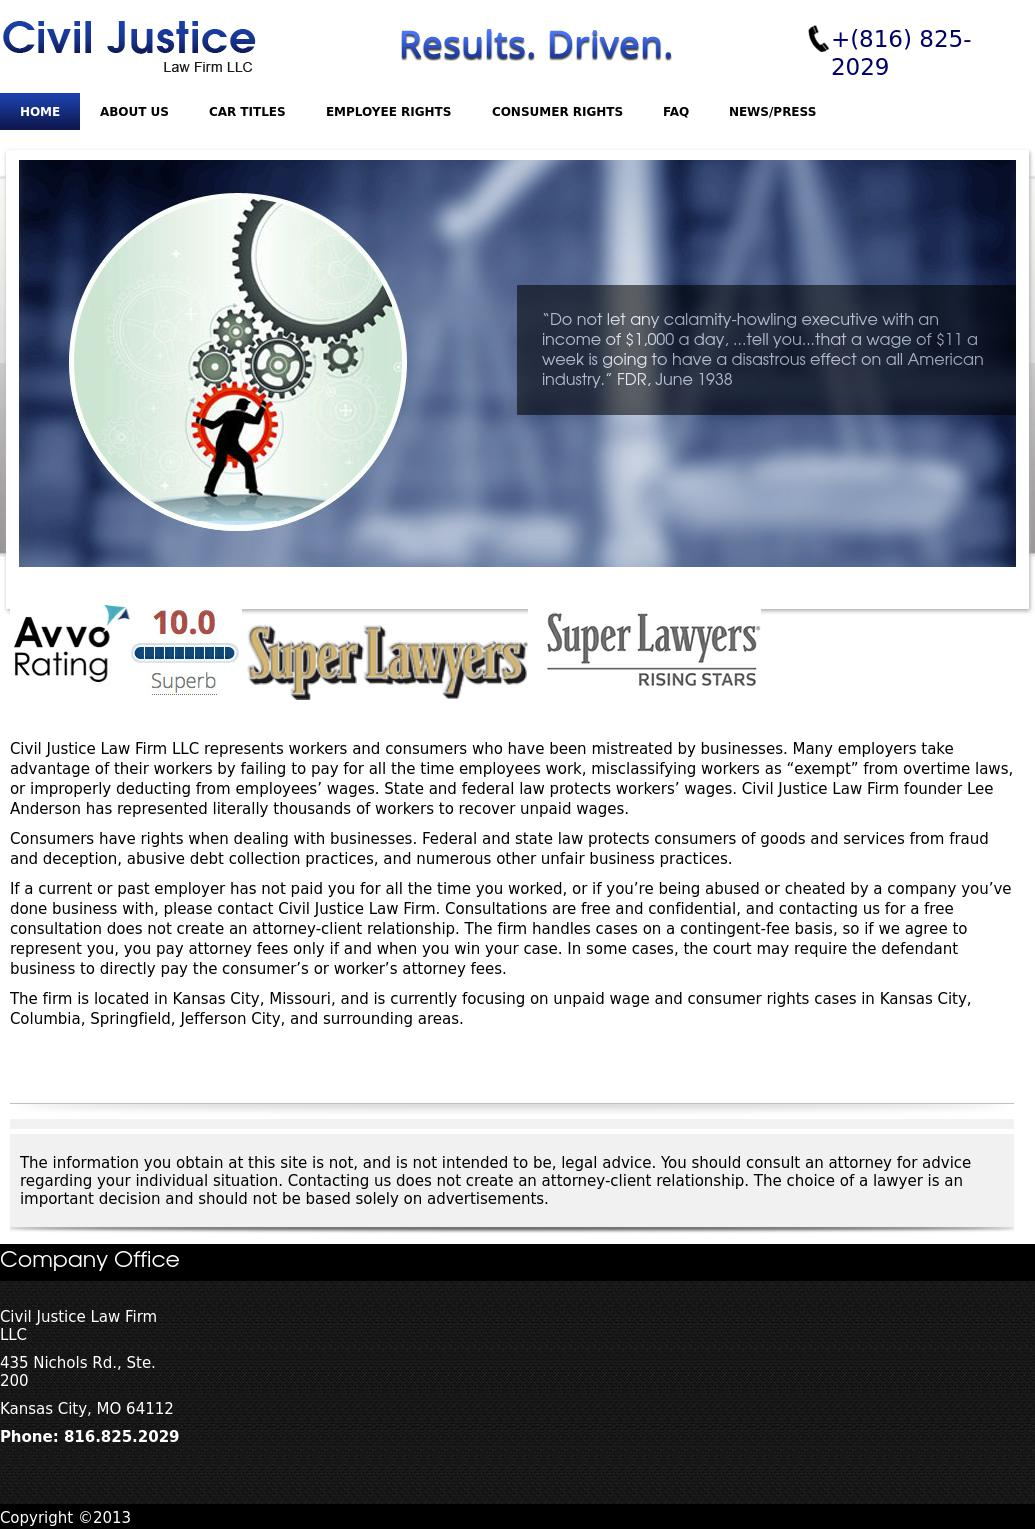 Civil Justice Law Firm LLC - Kansas City MO Lawyers